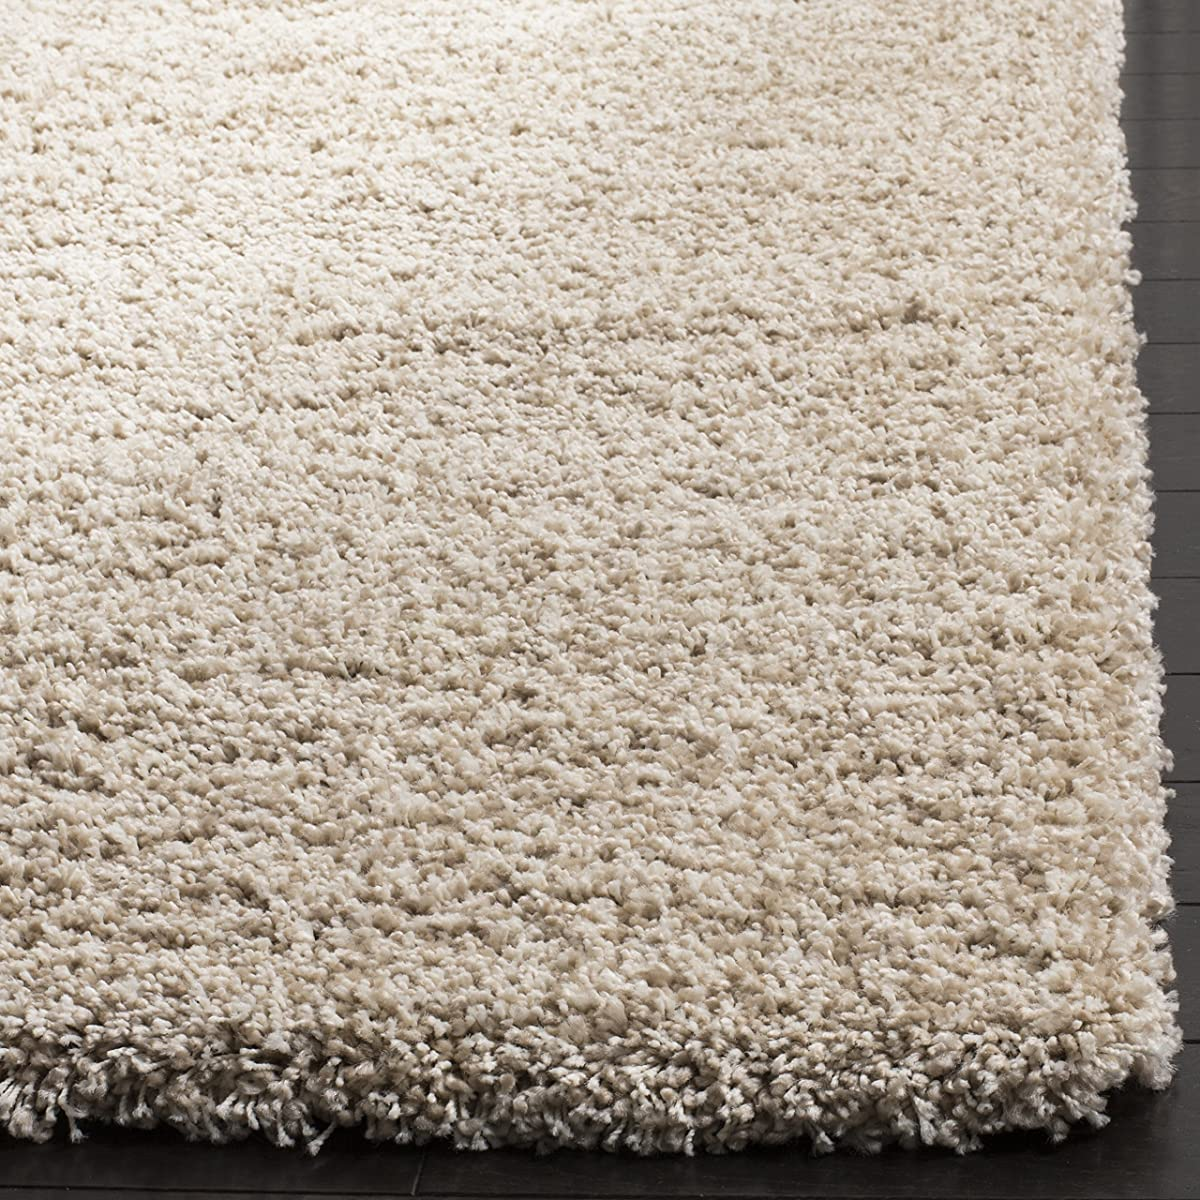 Safavieh California Shag Collection 8' x 10' Area Rug, Beige